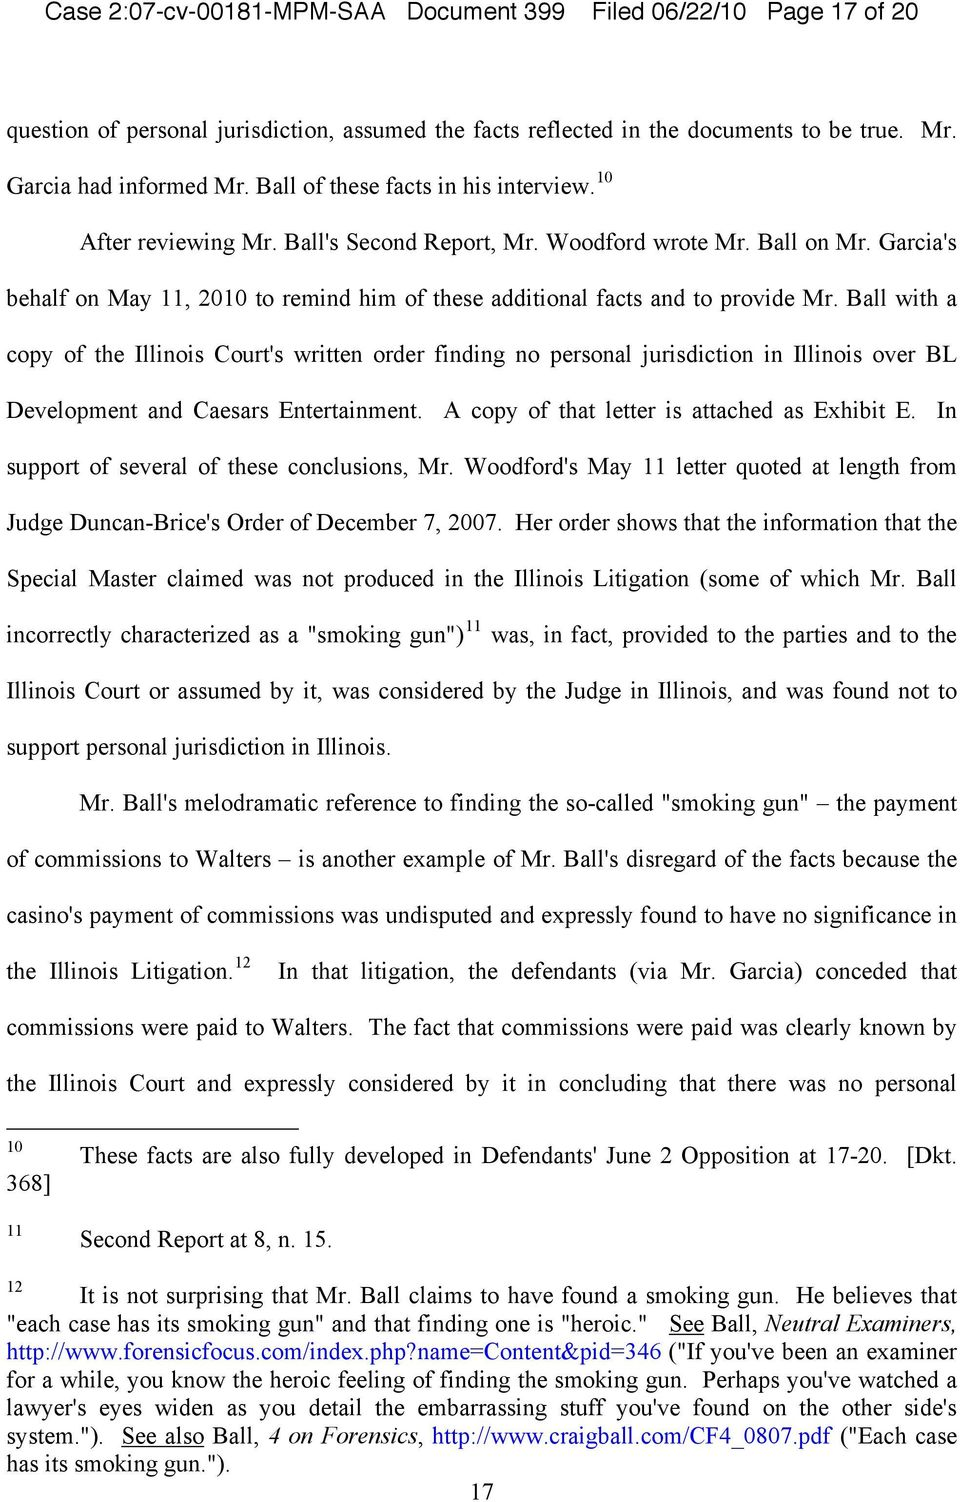 Garcia's behalf on May 11, 2010 to remind him of these additional facts and to provide Mr.